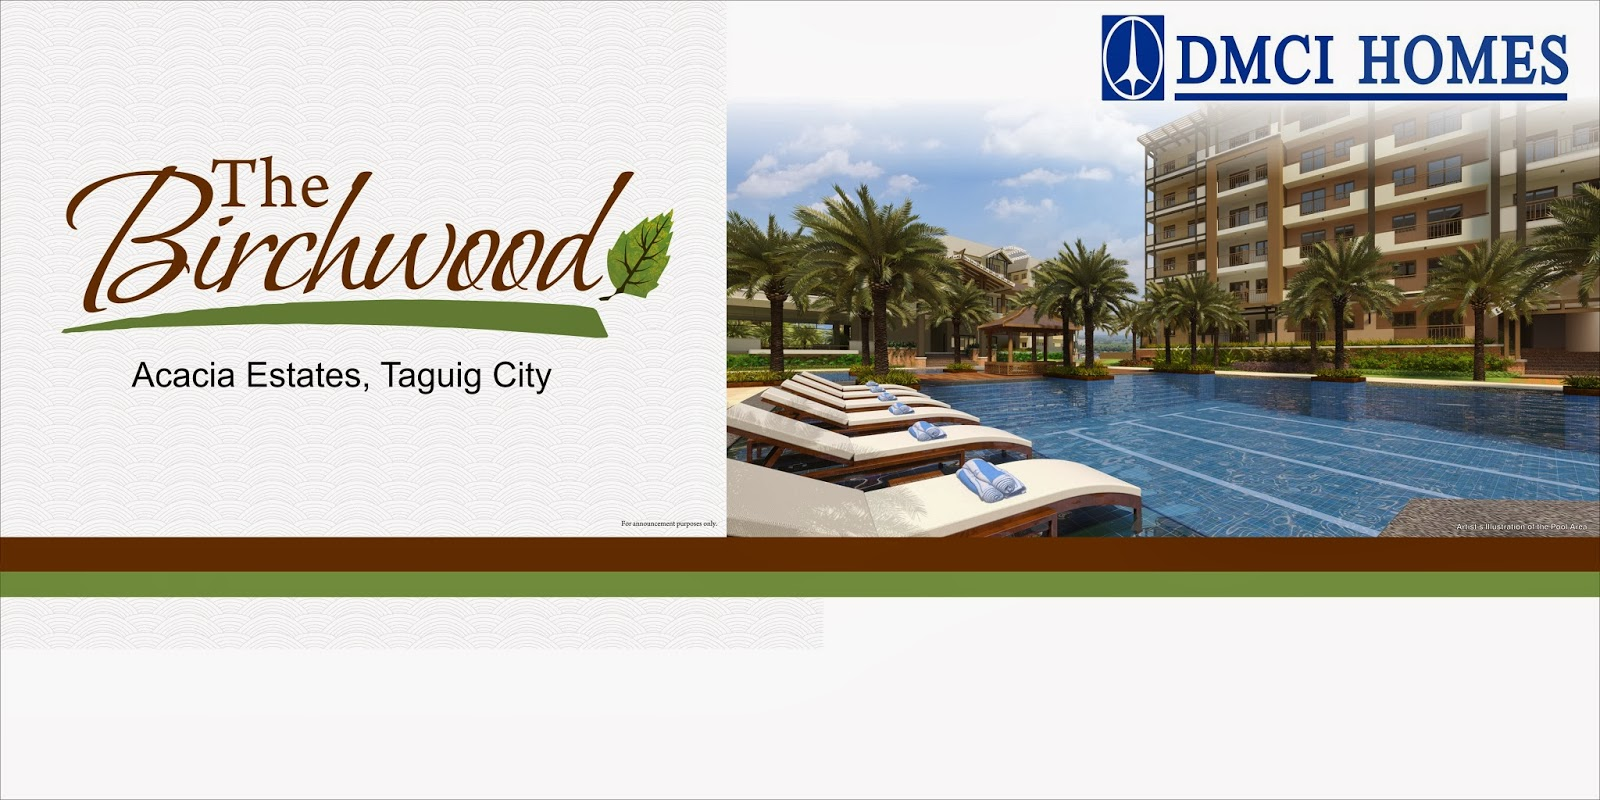 Dmci Homes Residential Condominium Metro Manila The